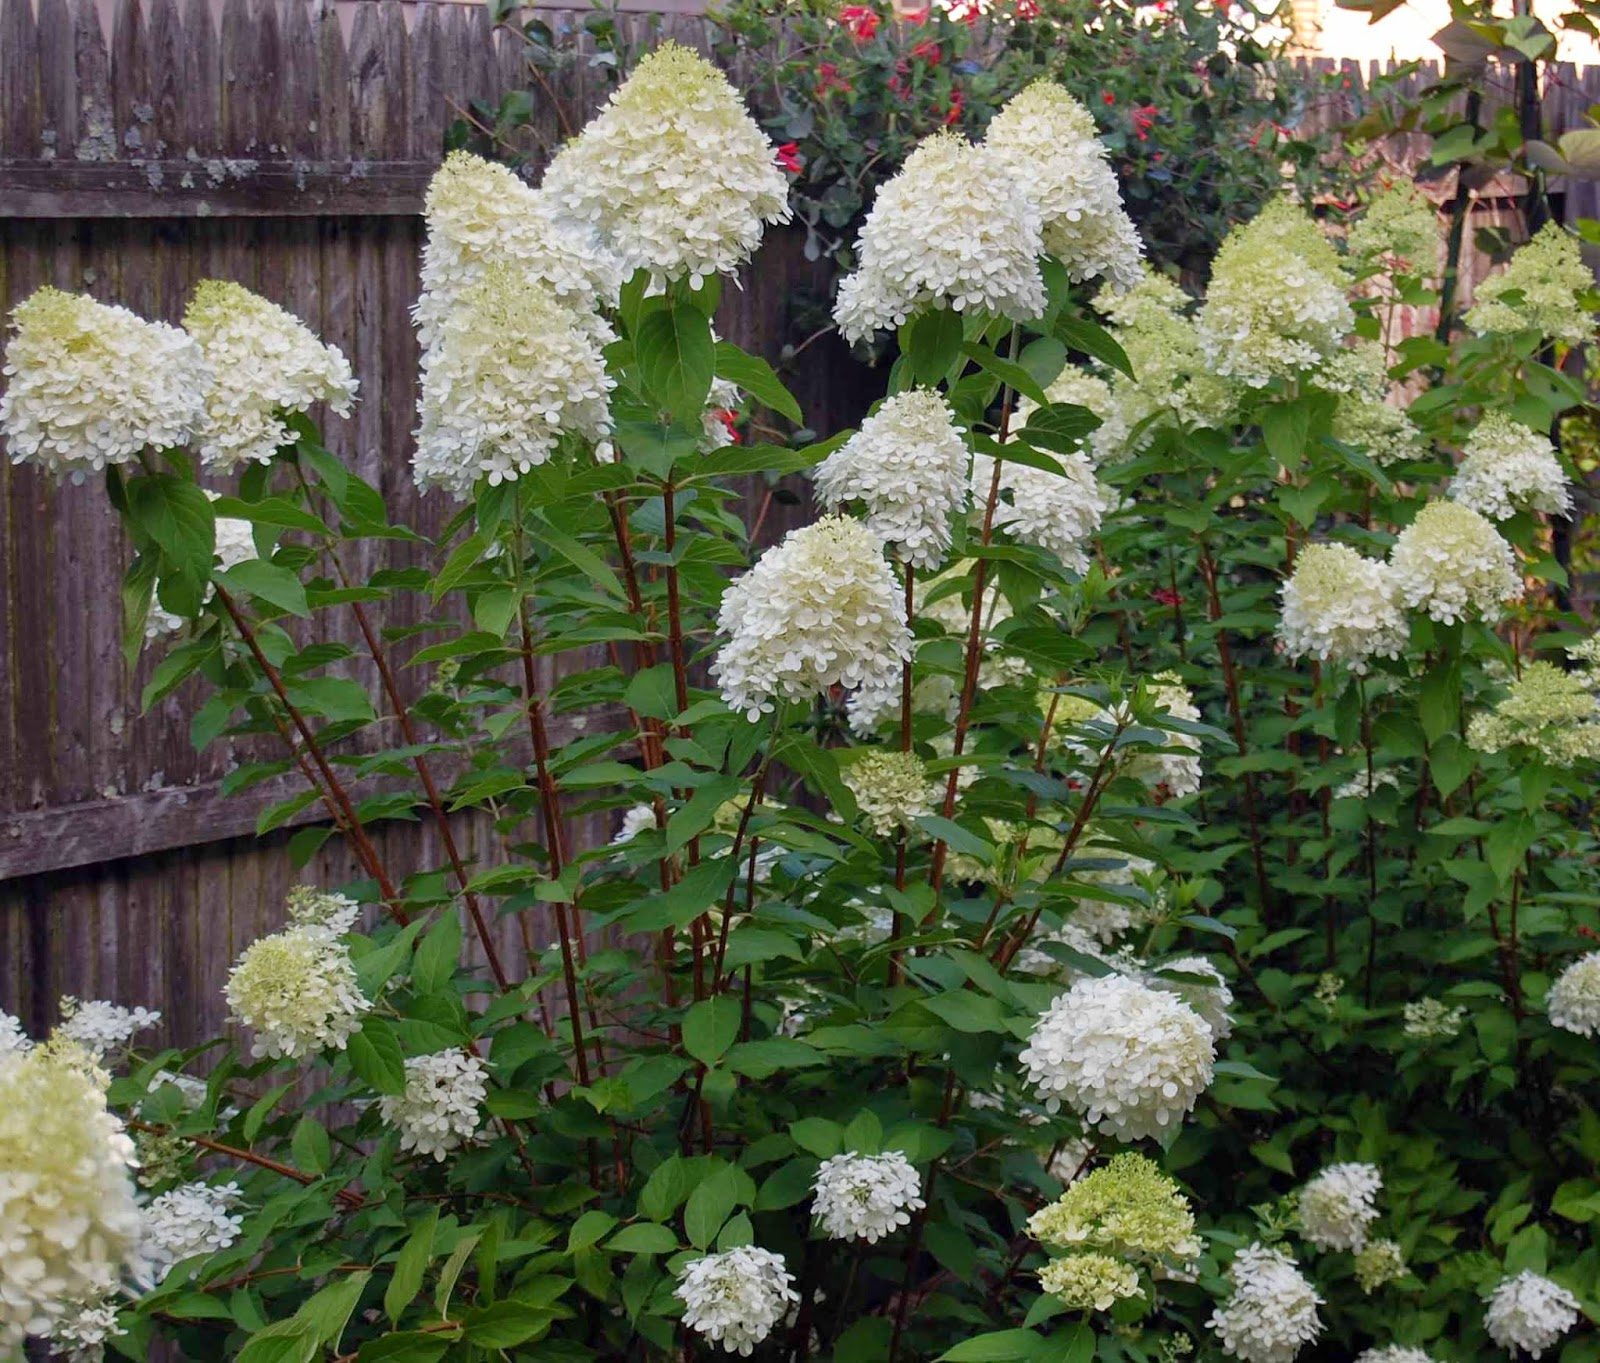 New London Beautification Committee Will Hydrangeas Bloom This Summer